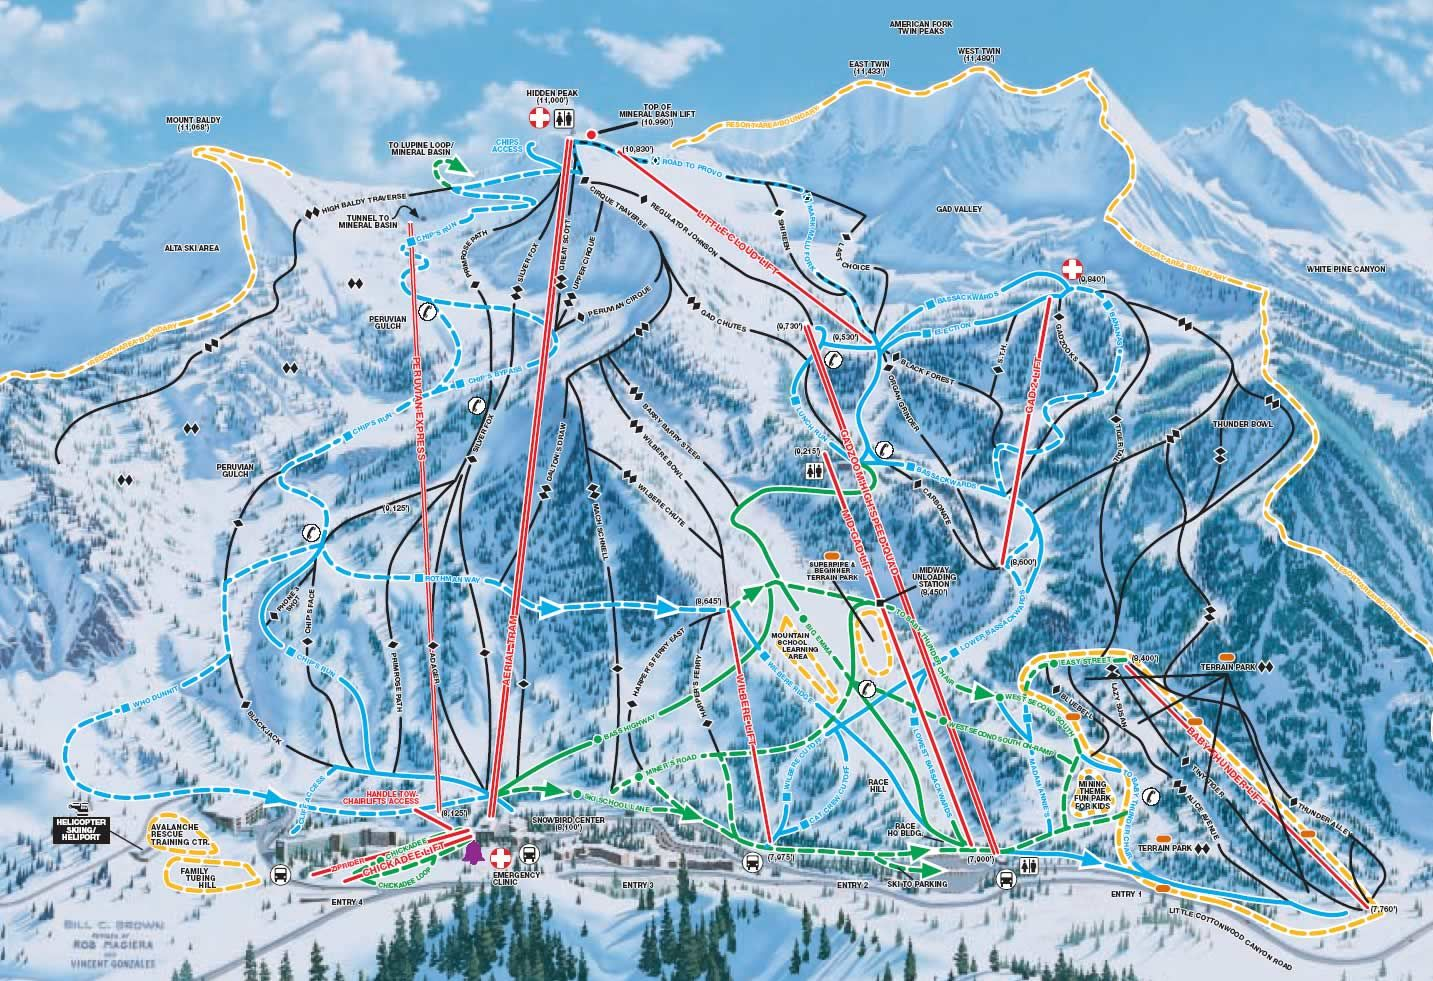 Red Mountain Trail Map In Bc Bc Pinterest Trail Maps And Mountains